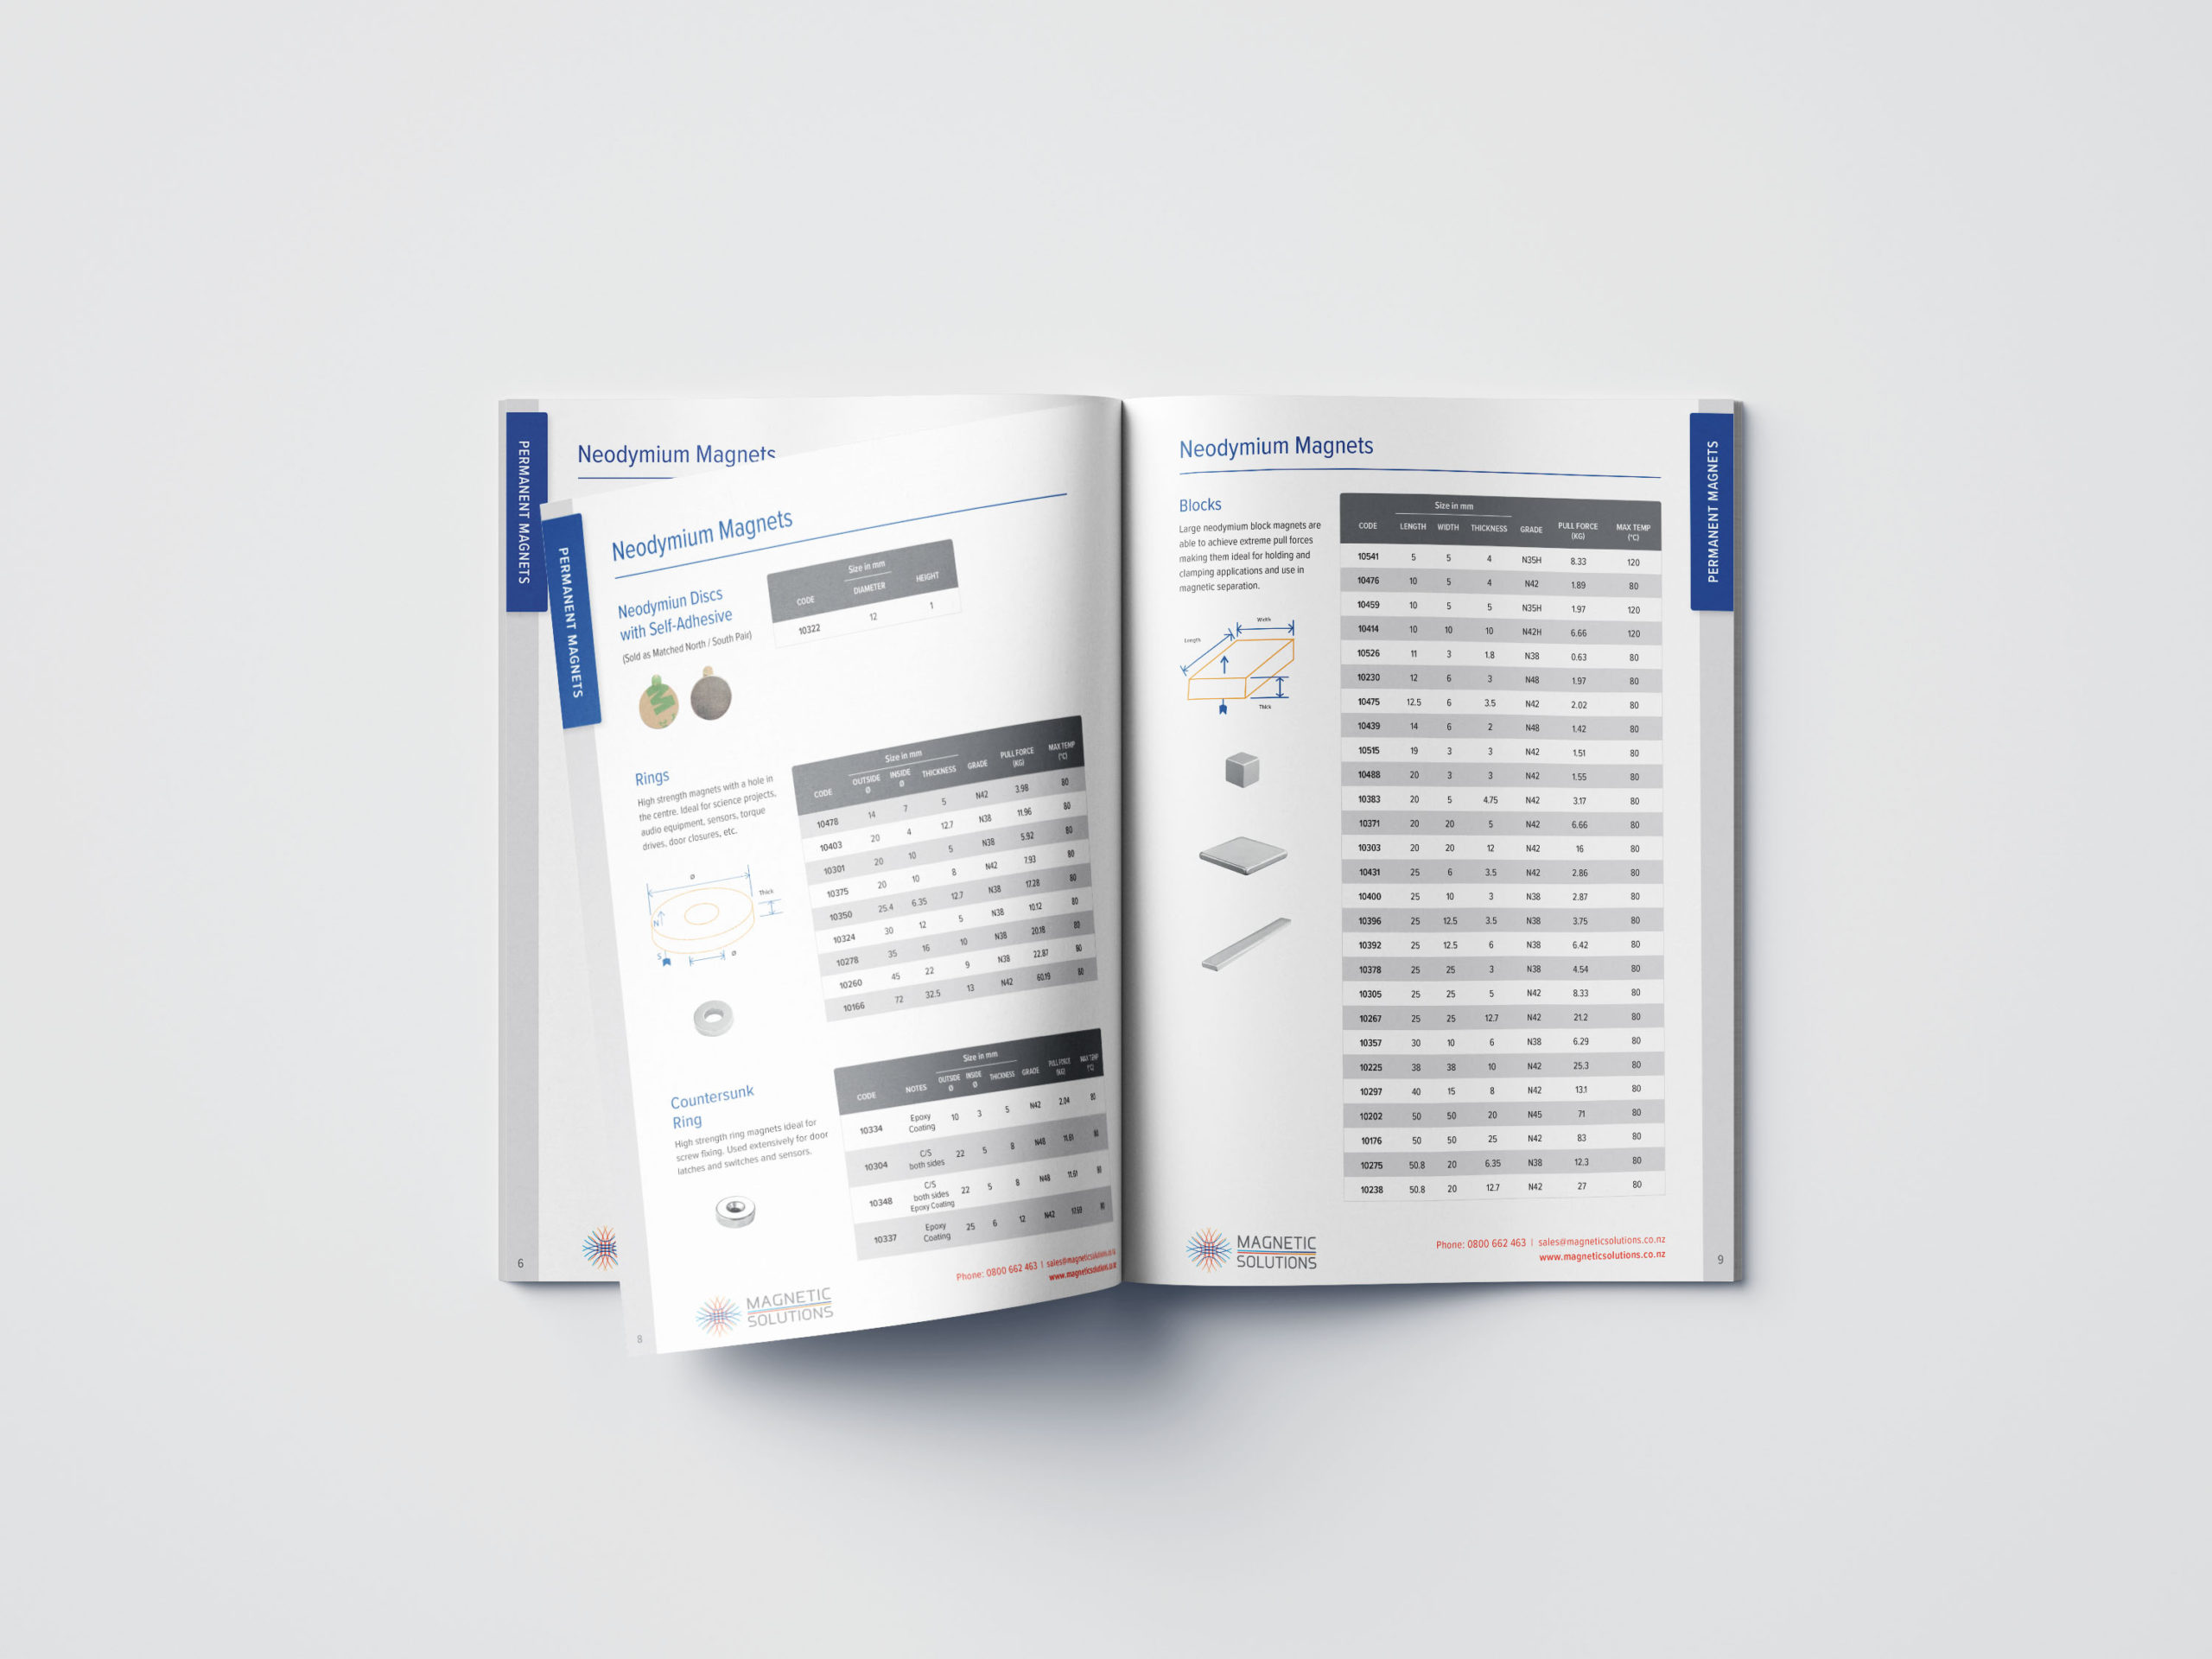 magnet catalogue interior pages with products and data